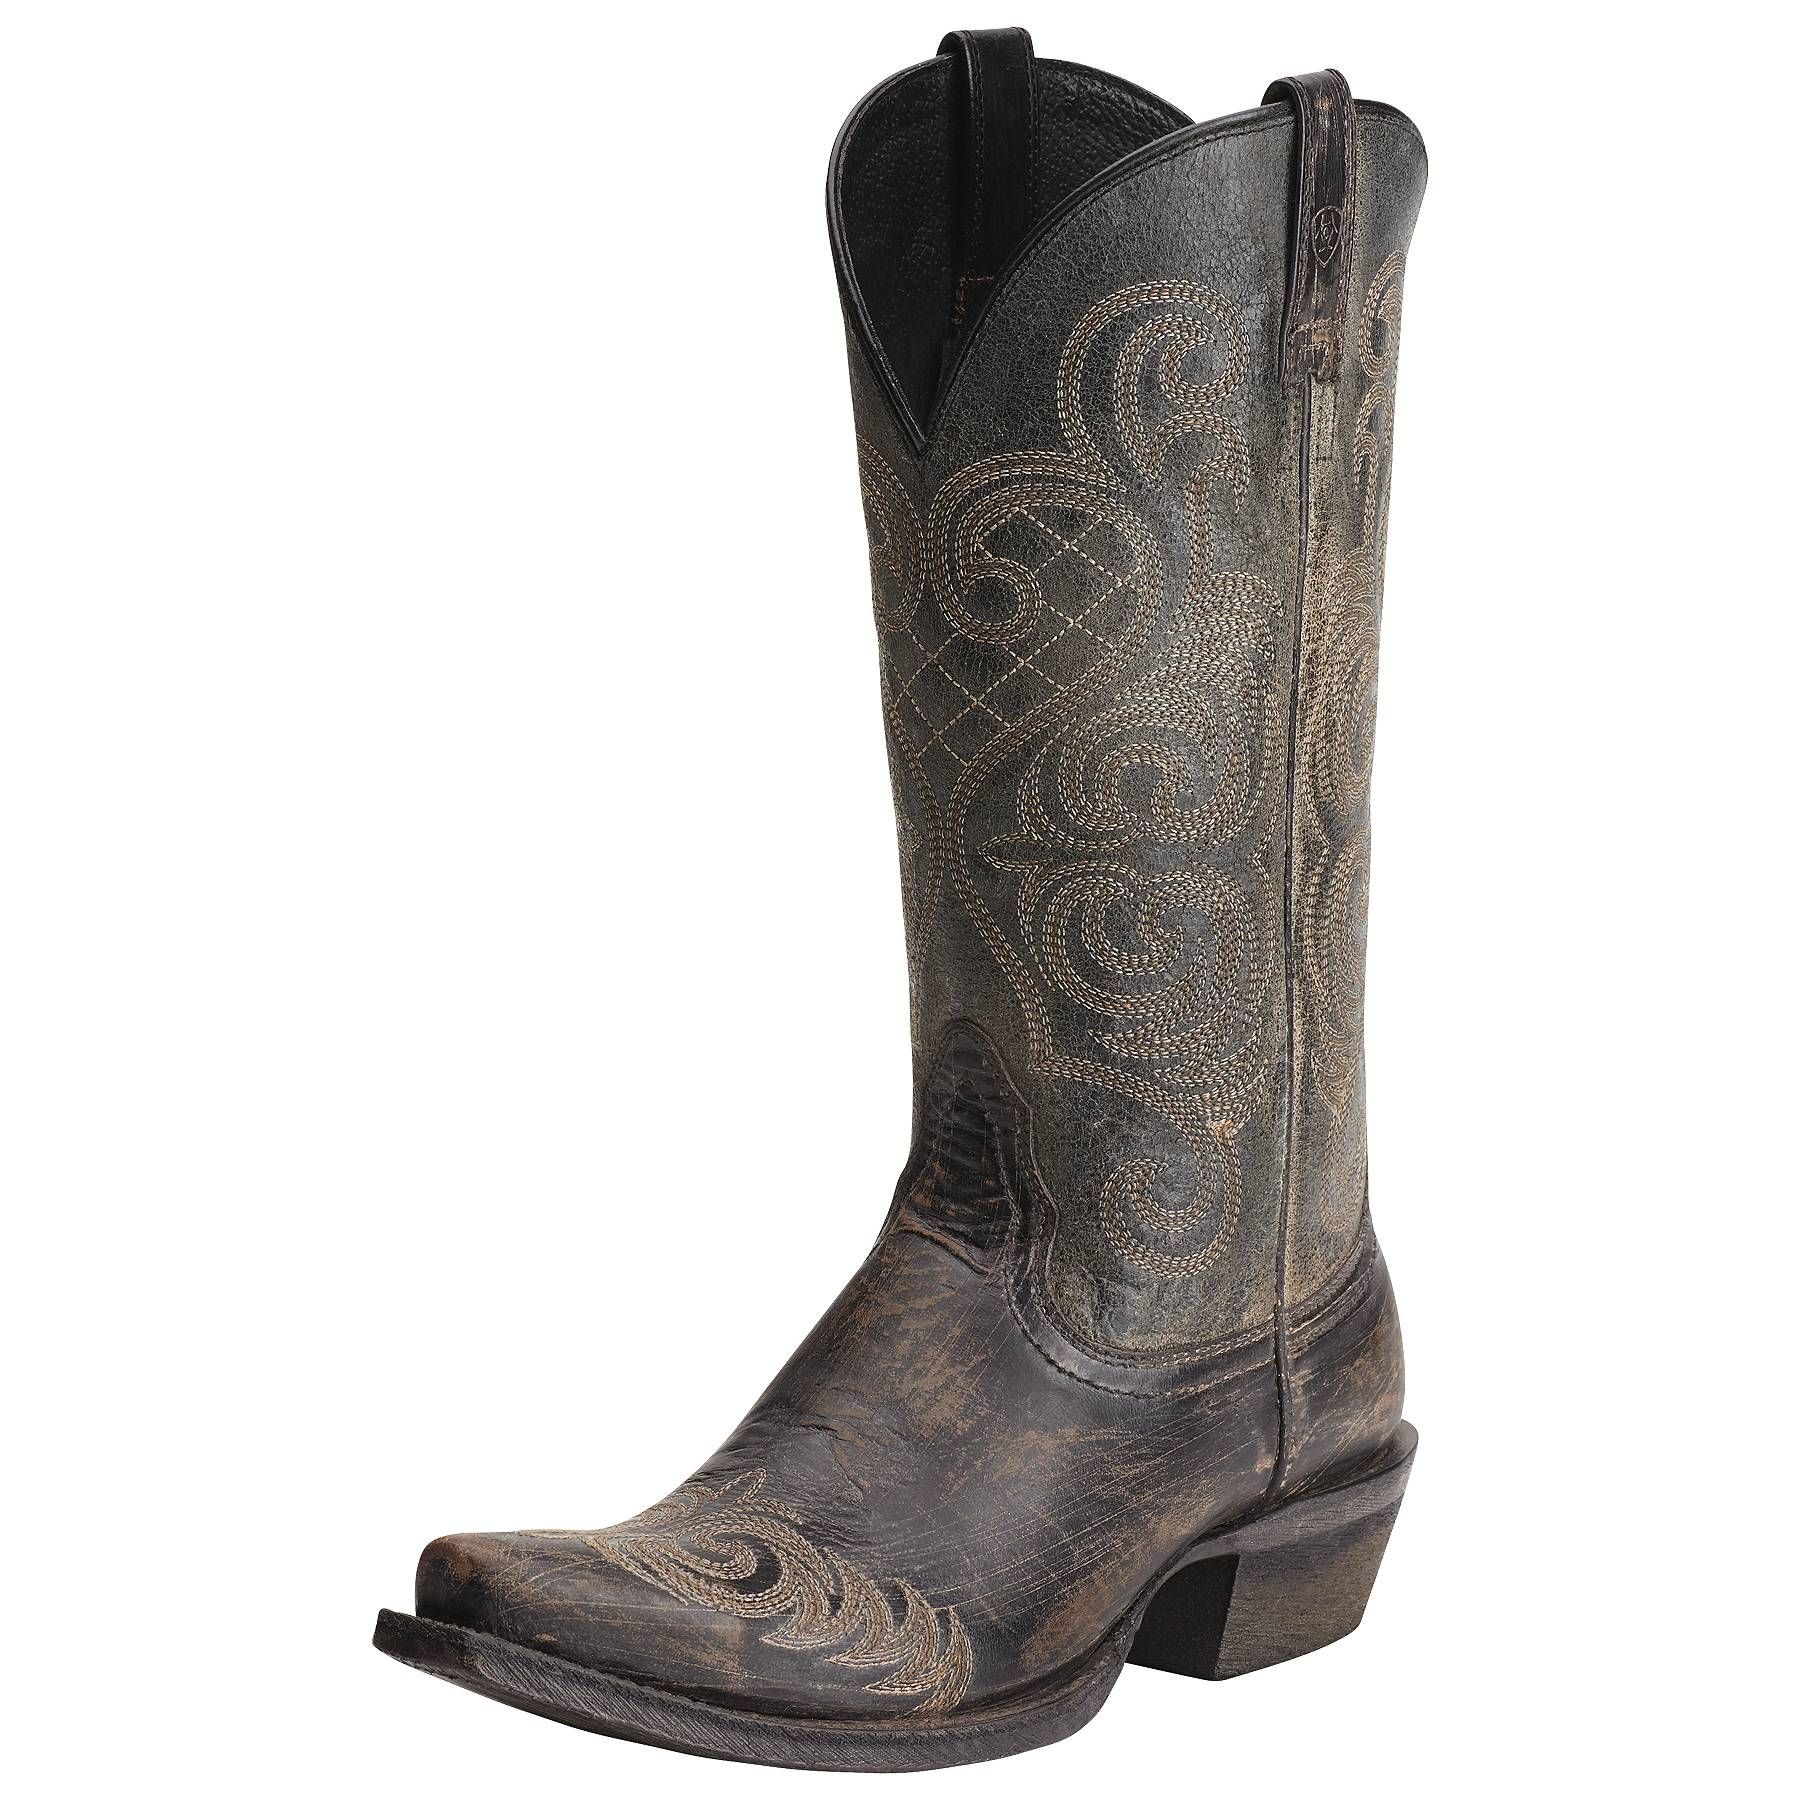 Ariat Women's Bright Lights